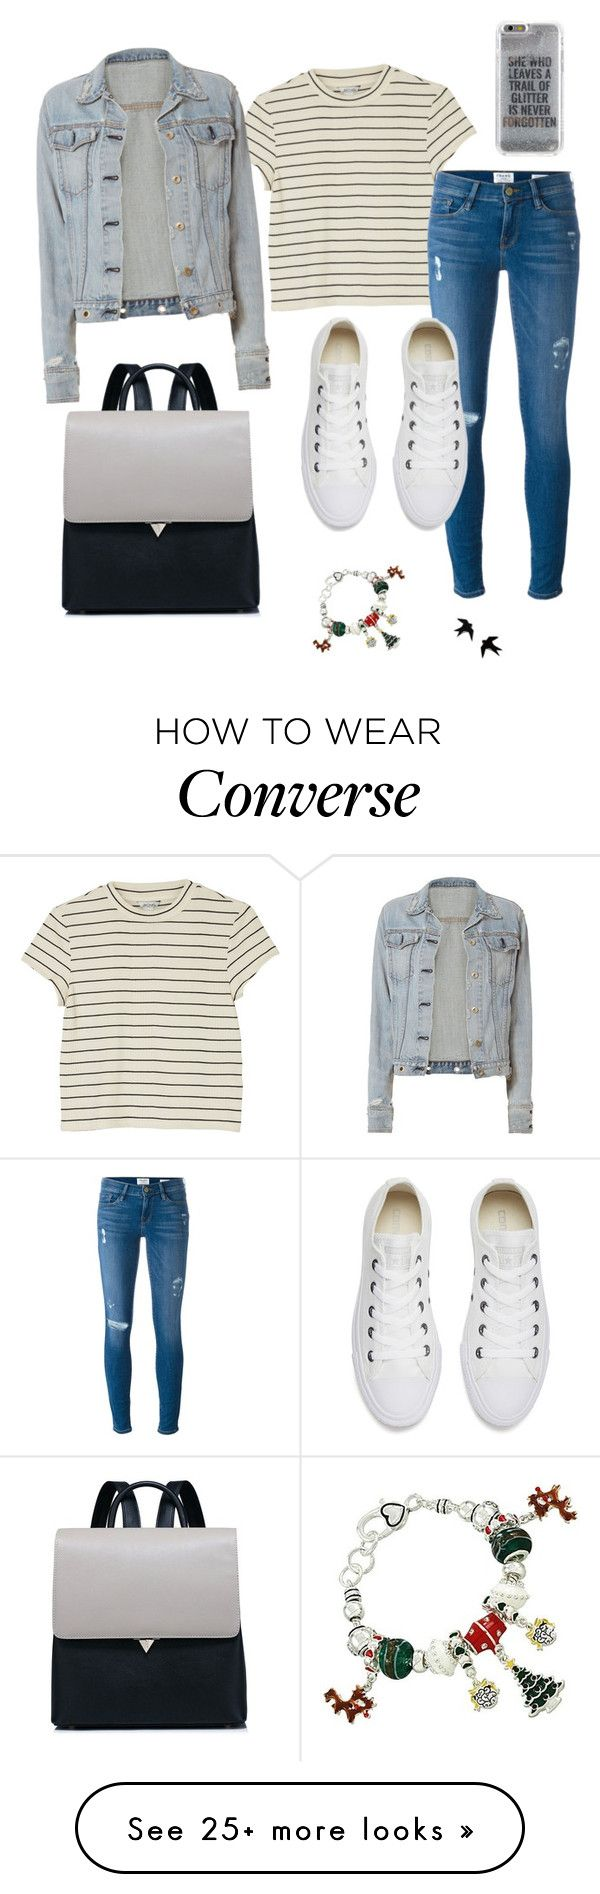 """Xmas at the grandma's house"" by maddigrace-ccc on Polyvore featuring Monki, Frame, Converse, rag & bone and Agent 18"